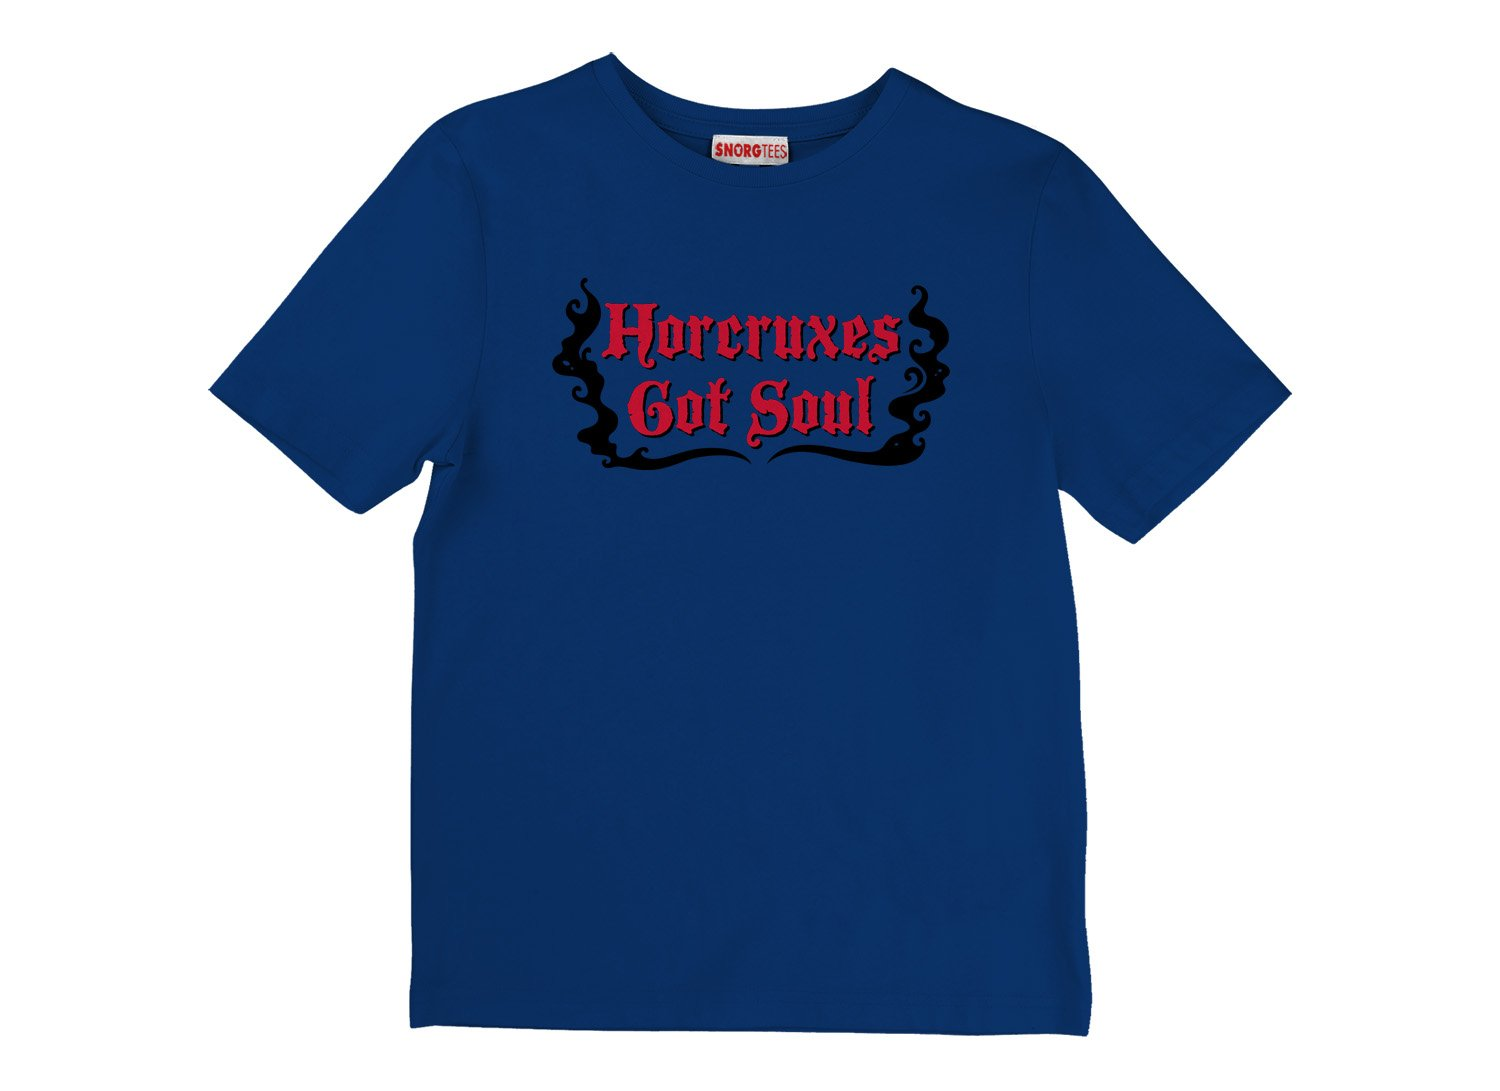 Horcruxes Got Soul on Kids T-Shirt